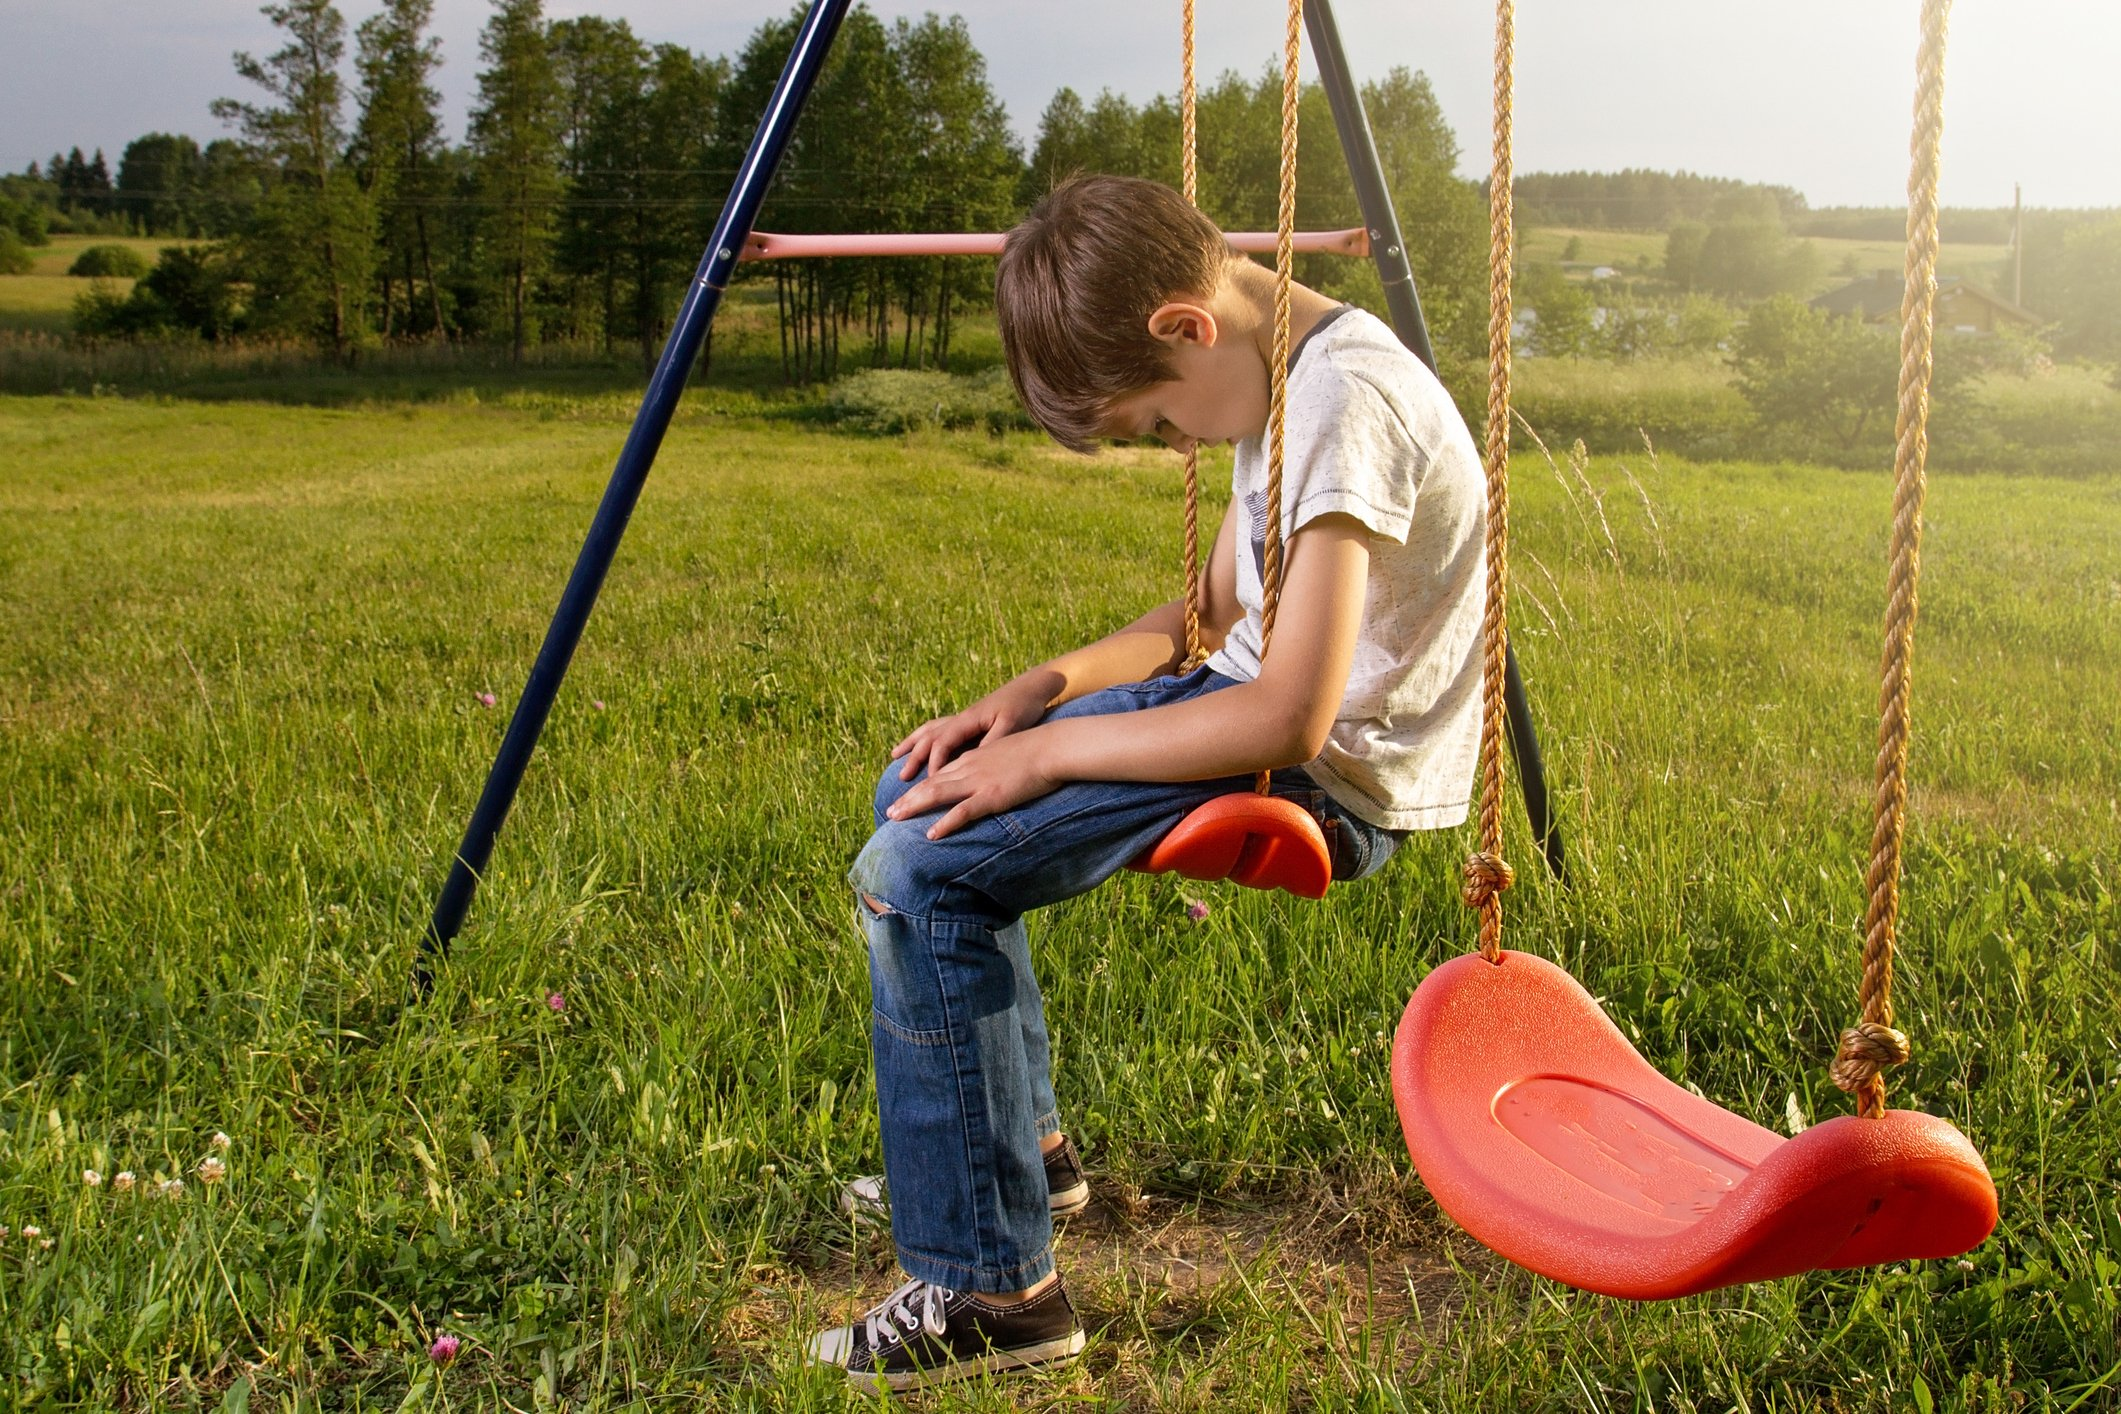 Sad Boy Sitting On Swing At Playground Alone | Photo: Getty Images